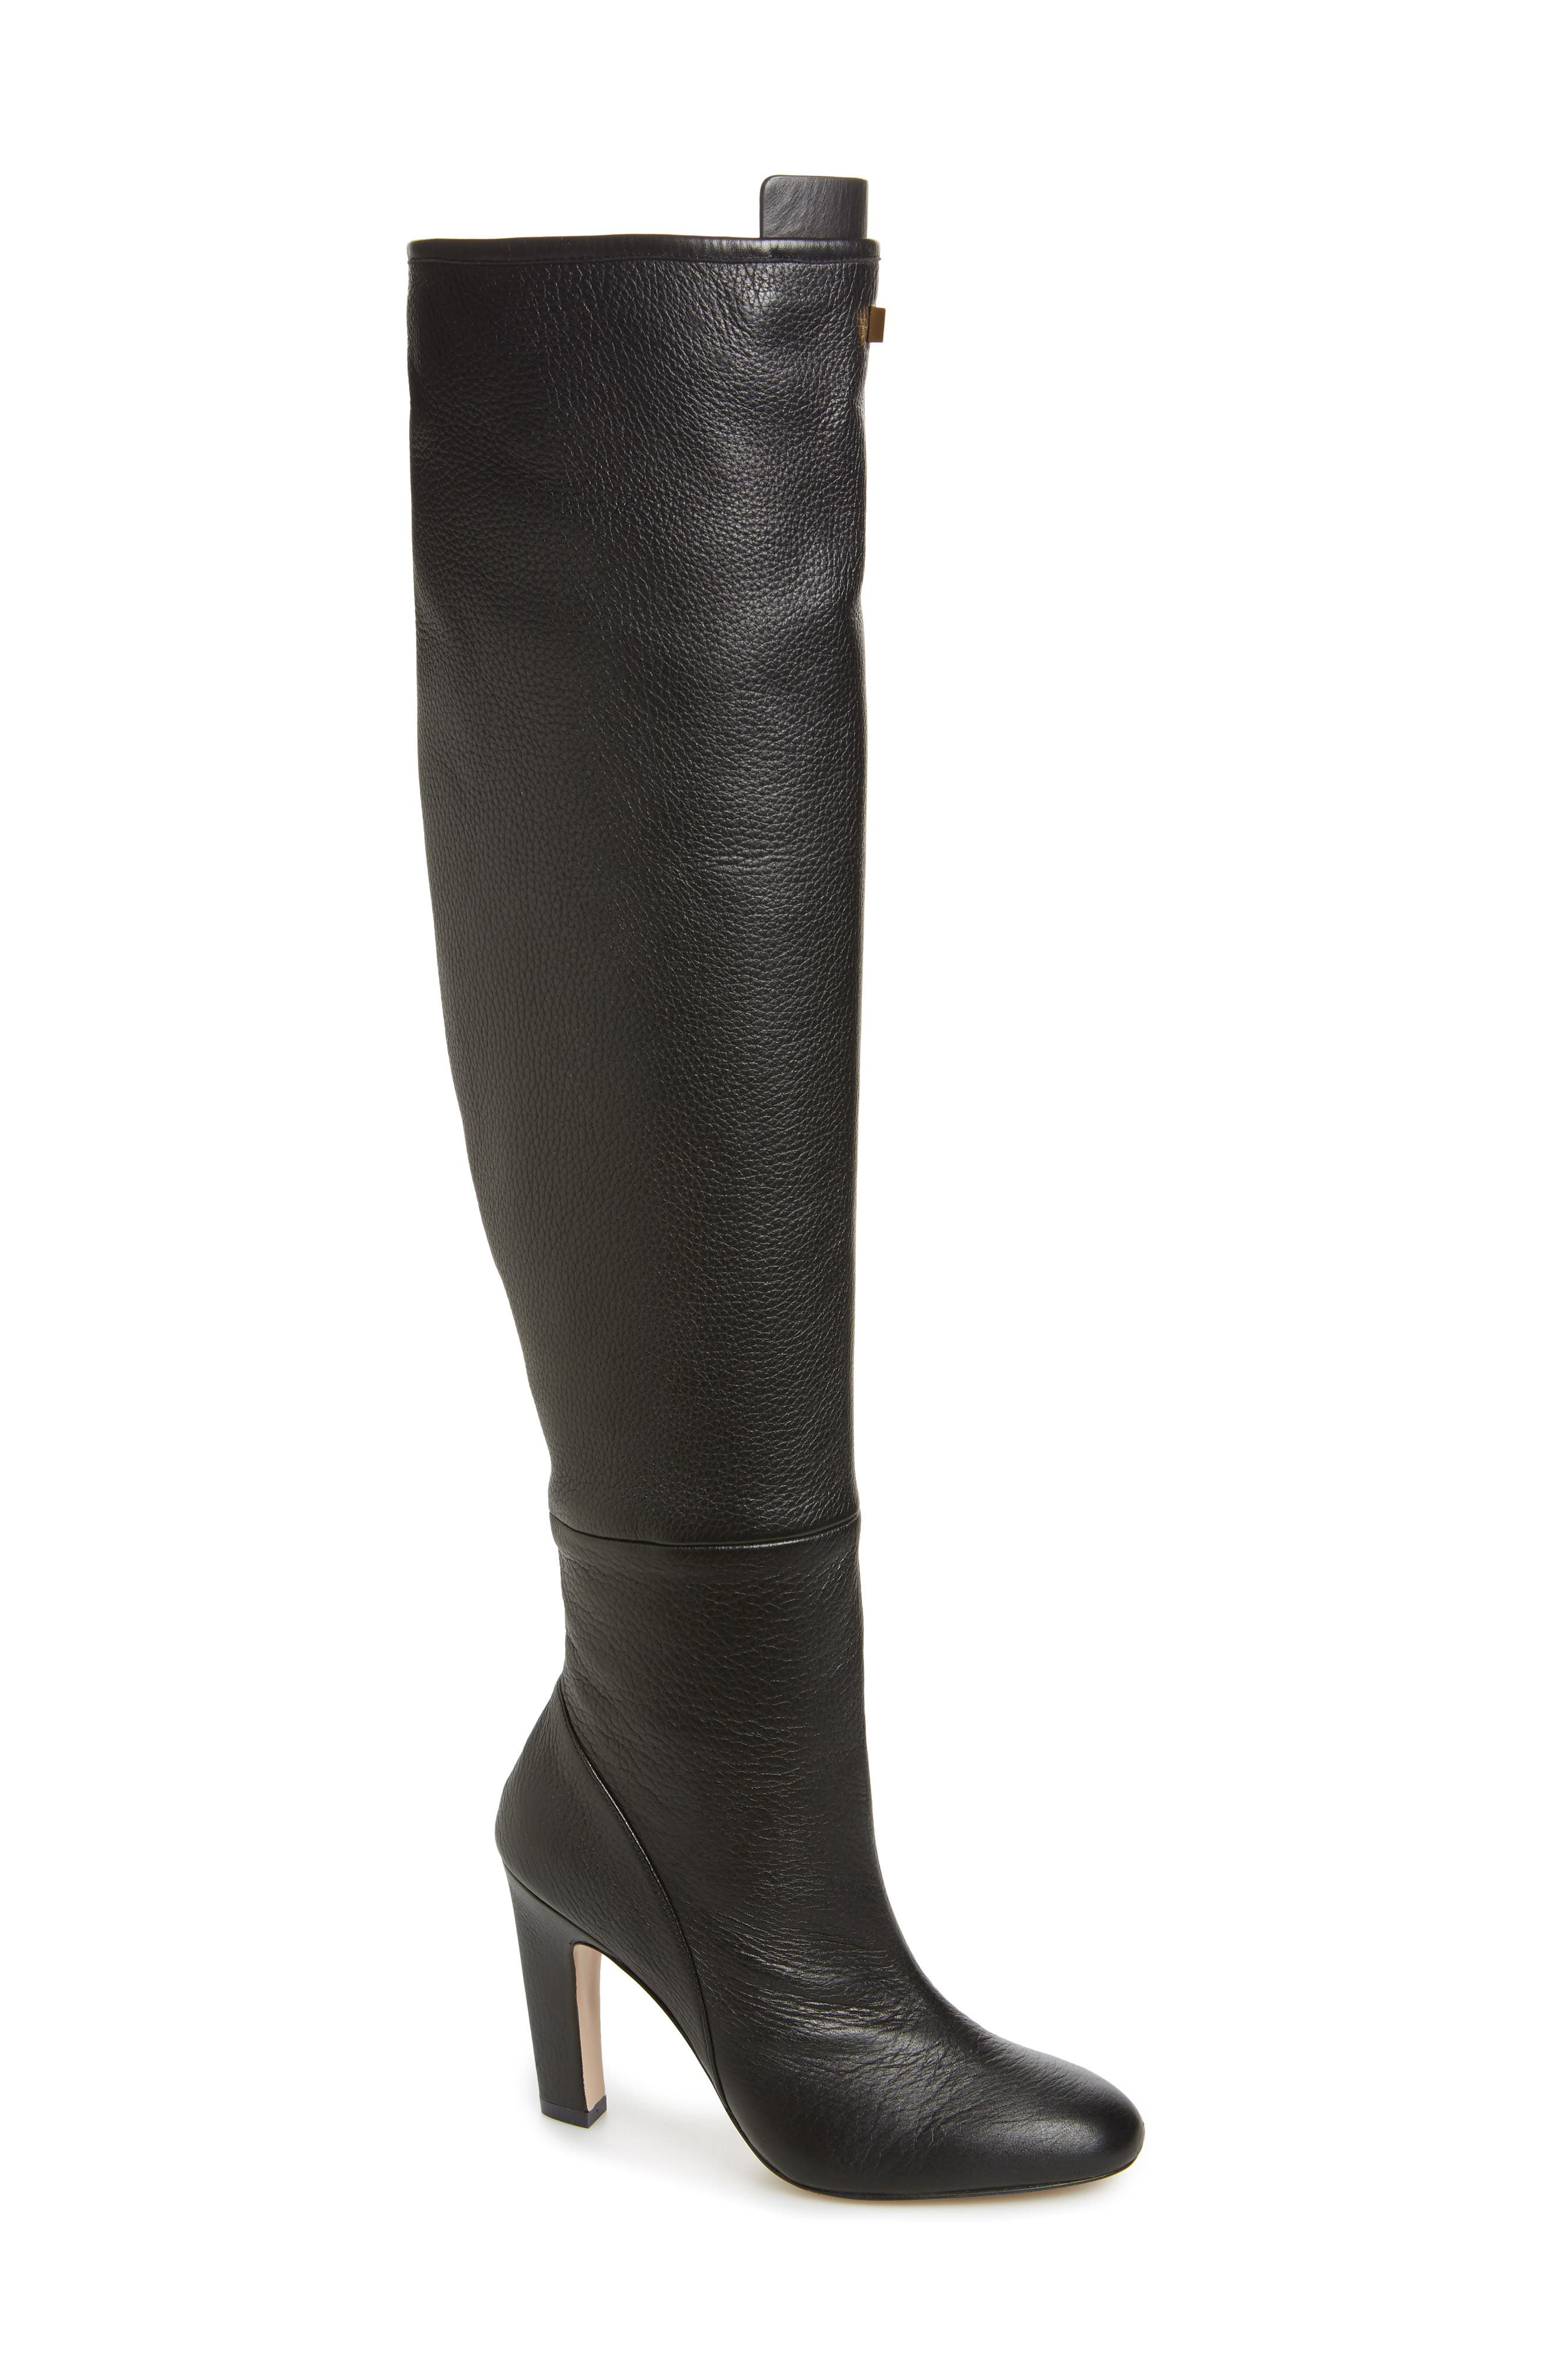 Edie Over the Knee Boot,                             Main thumbnail 1, color,                             PITCH BLACK GHENTO